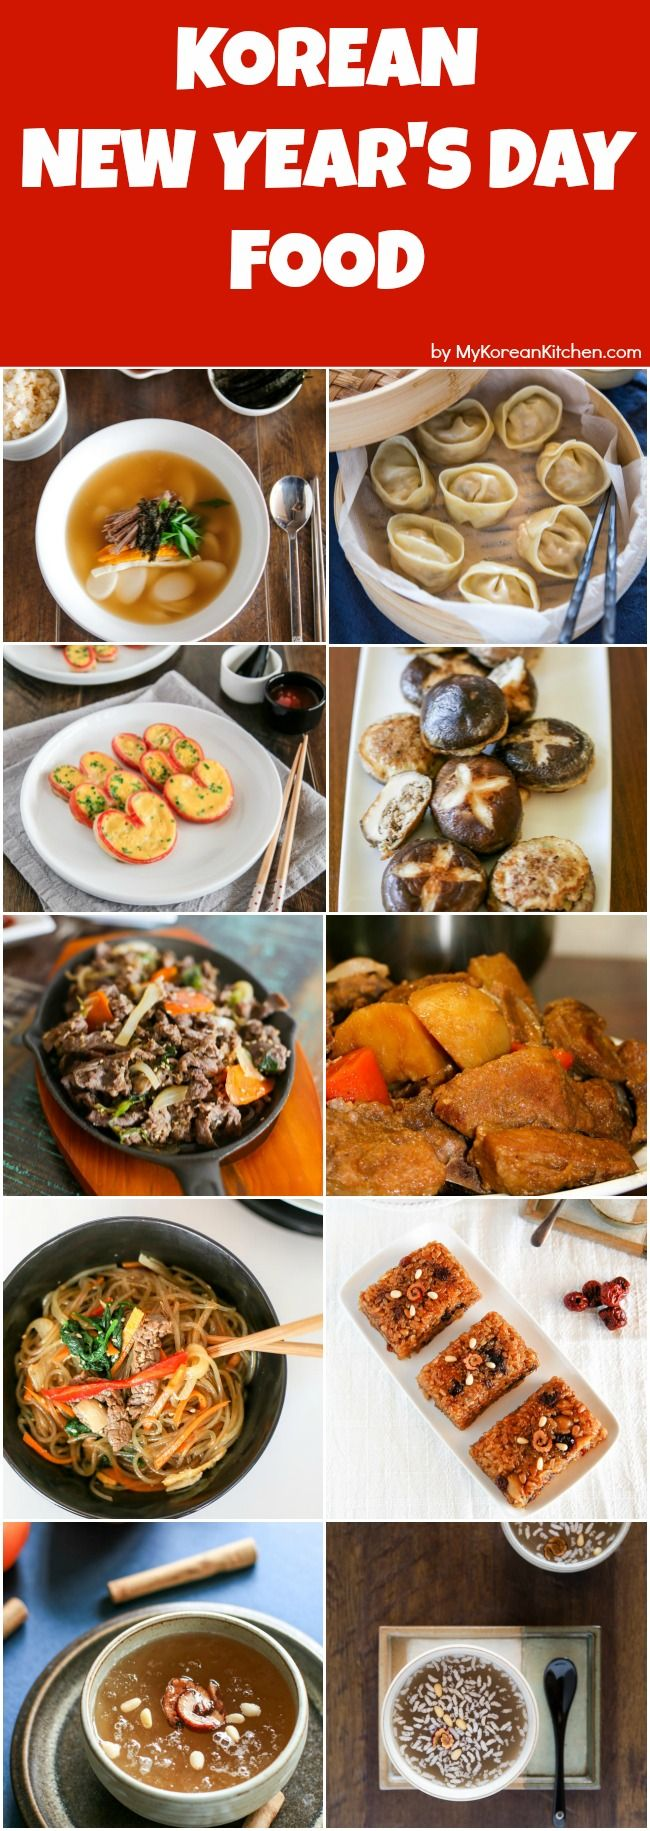 The 17 best images about Korean Recipes on Pinterest